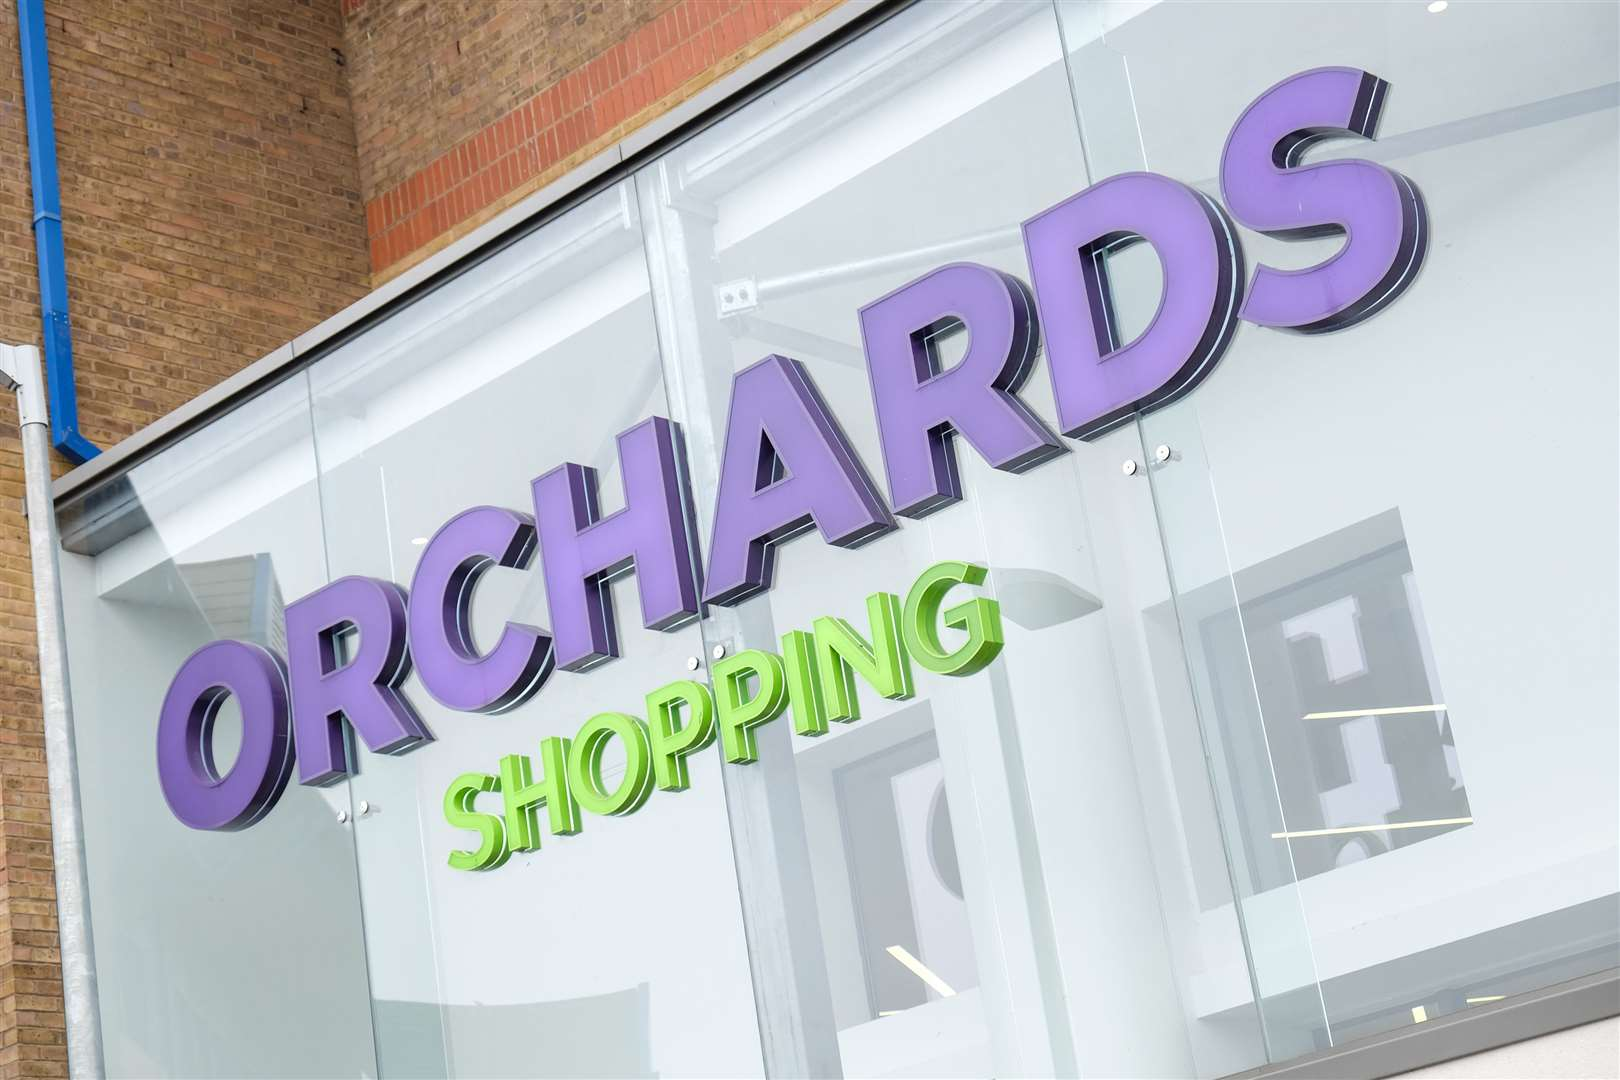 Orchards Shopping Centre is covered by the scheme. Picture: Matthew Walker